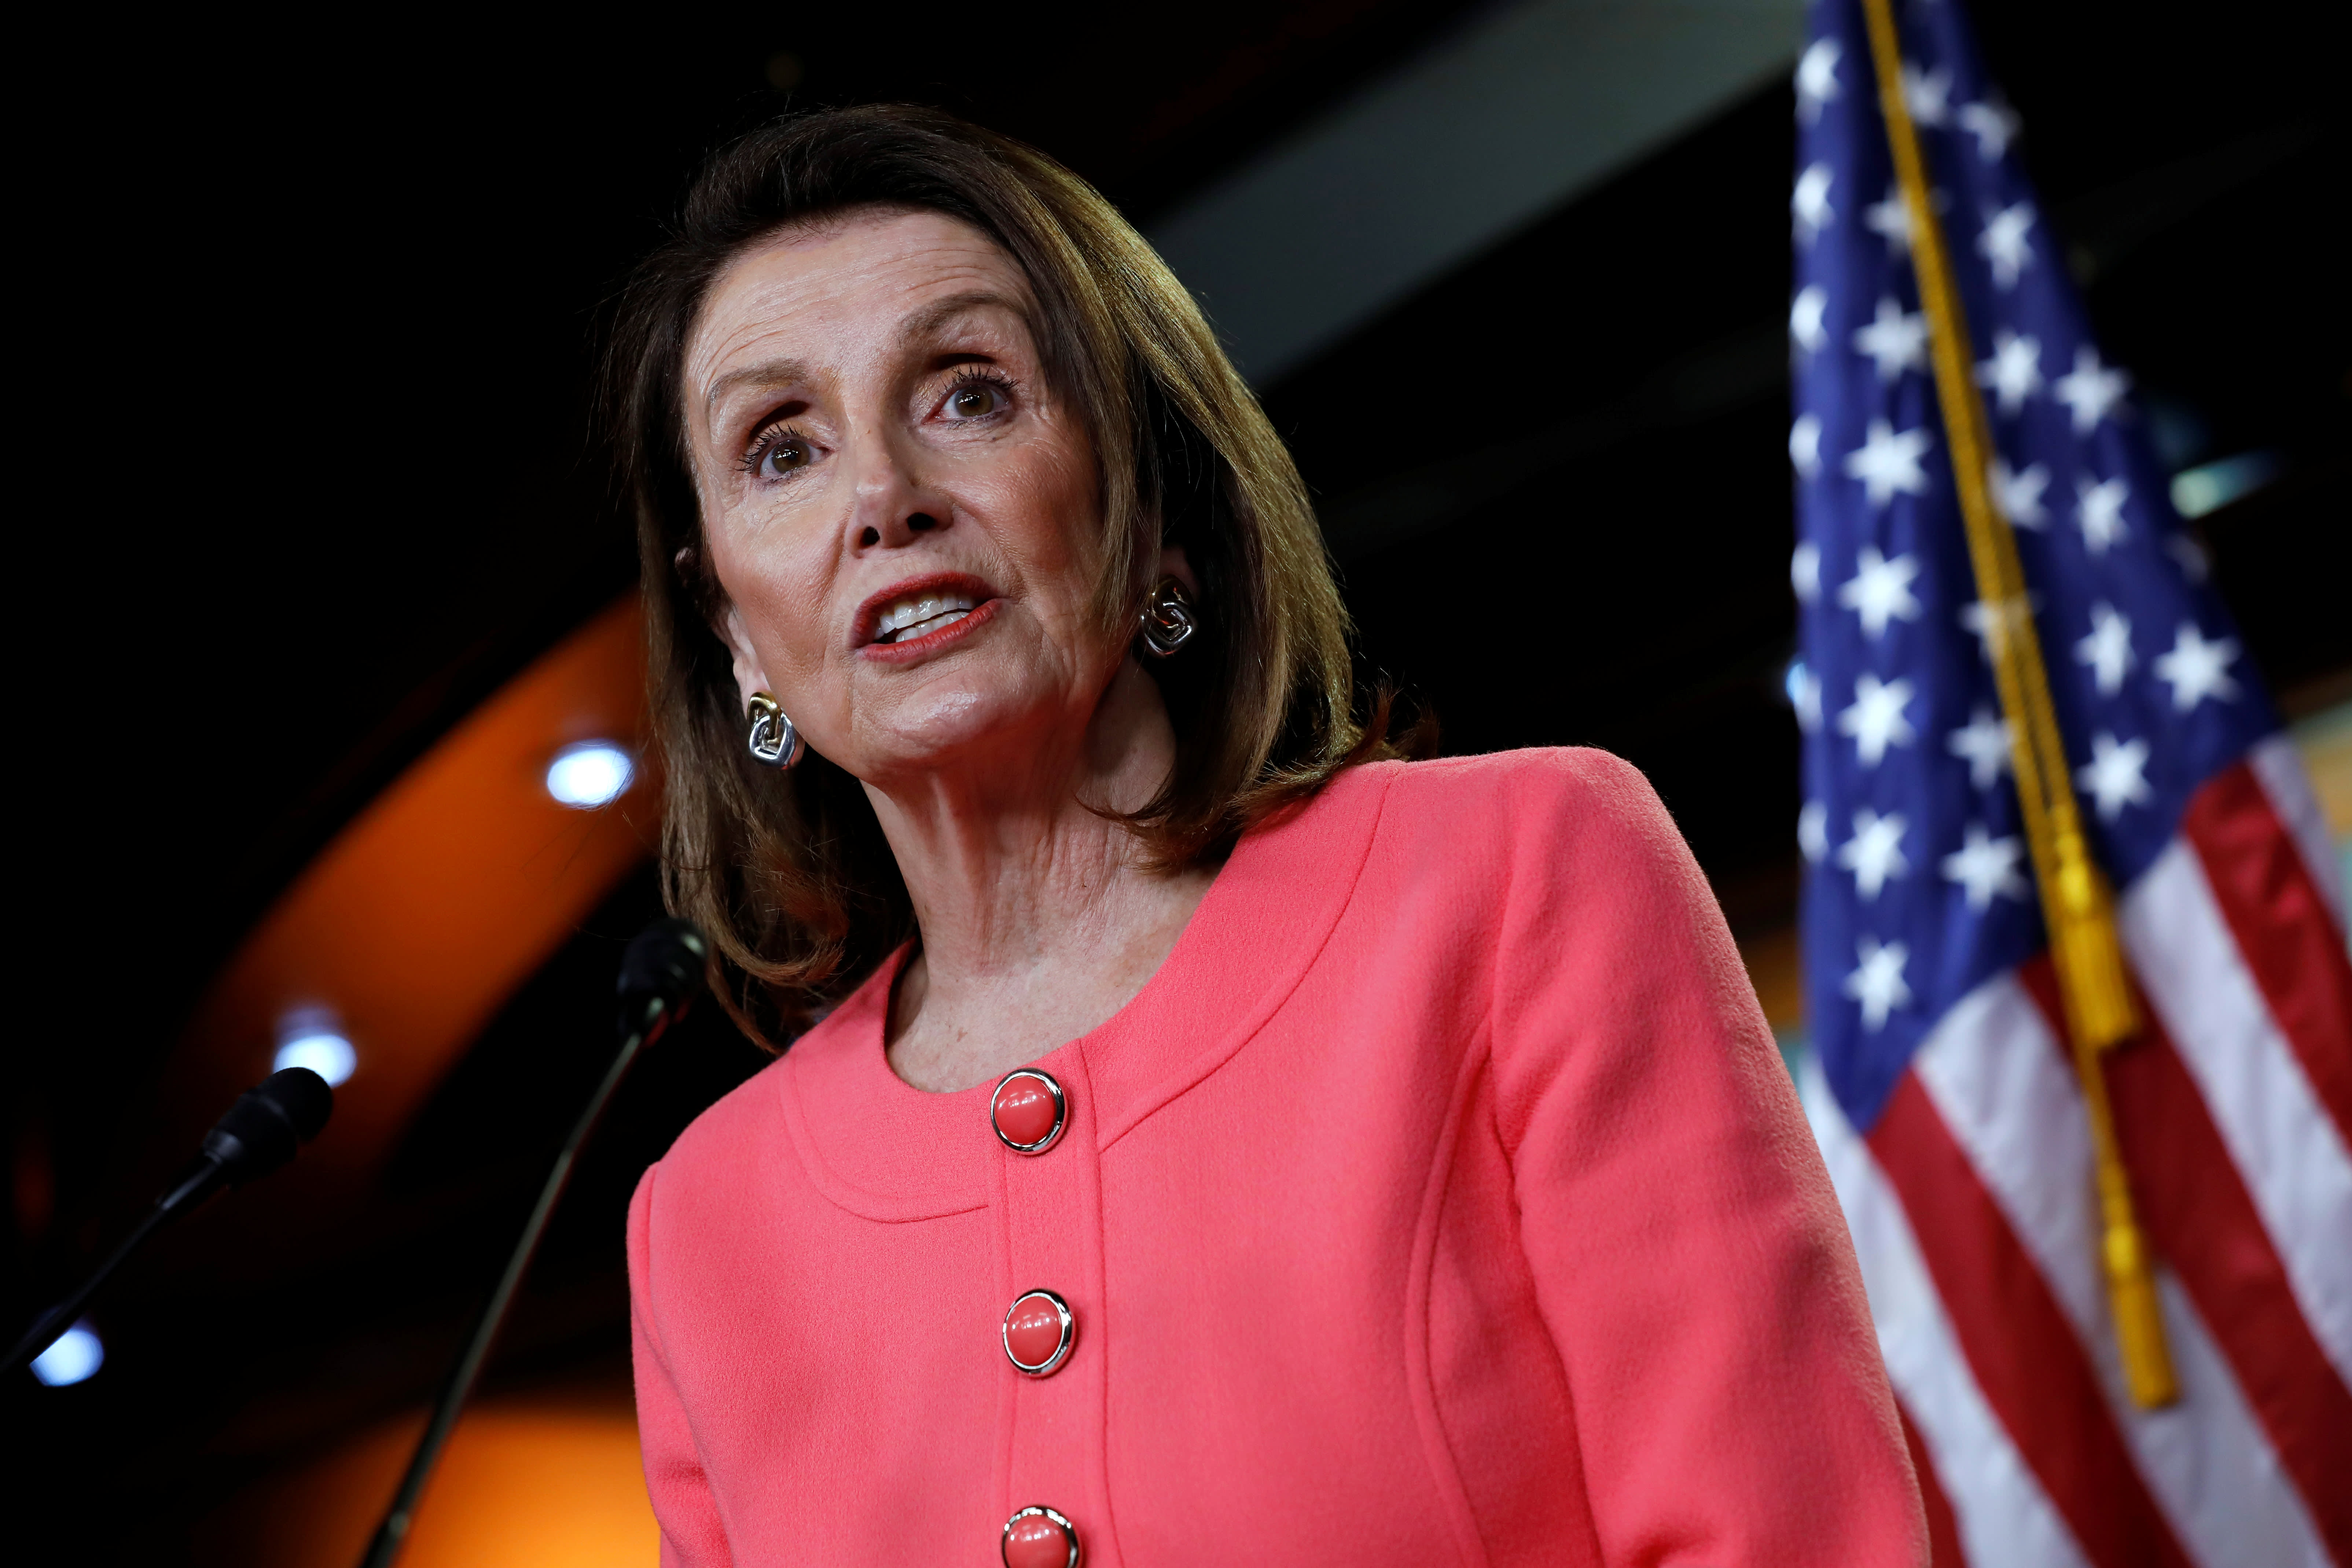 Nancy Pelosi will meet with top Trump trade official Robert Lighthizer as China and NAFTA fights escalate